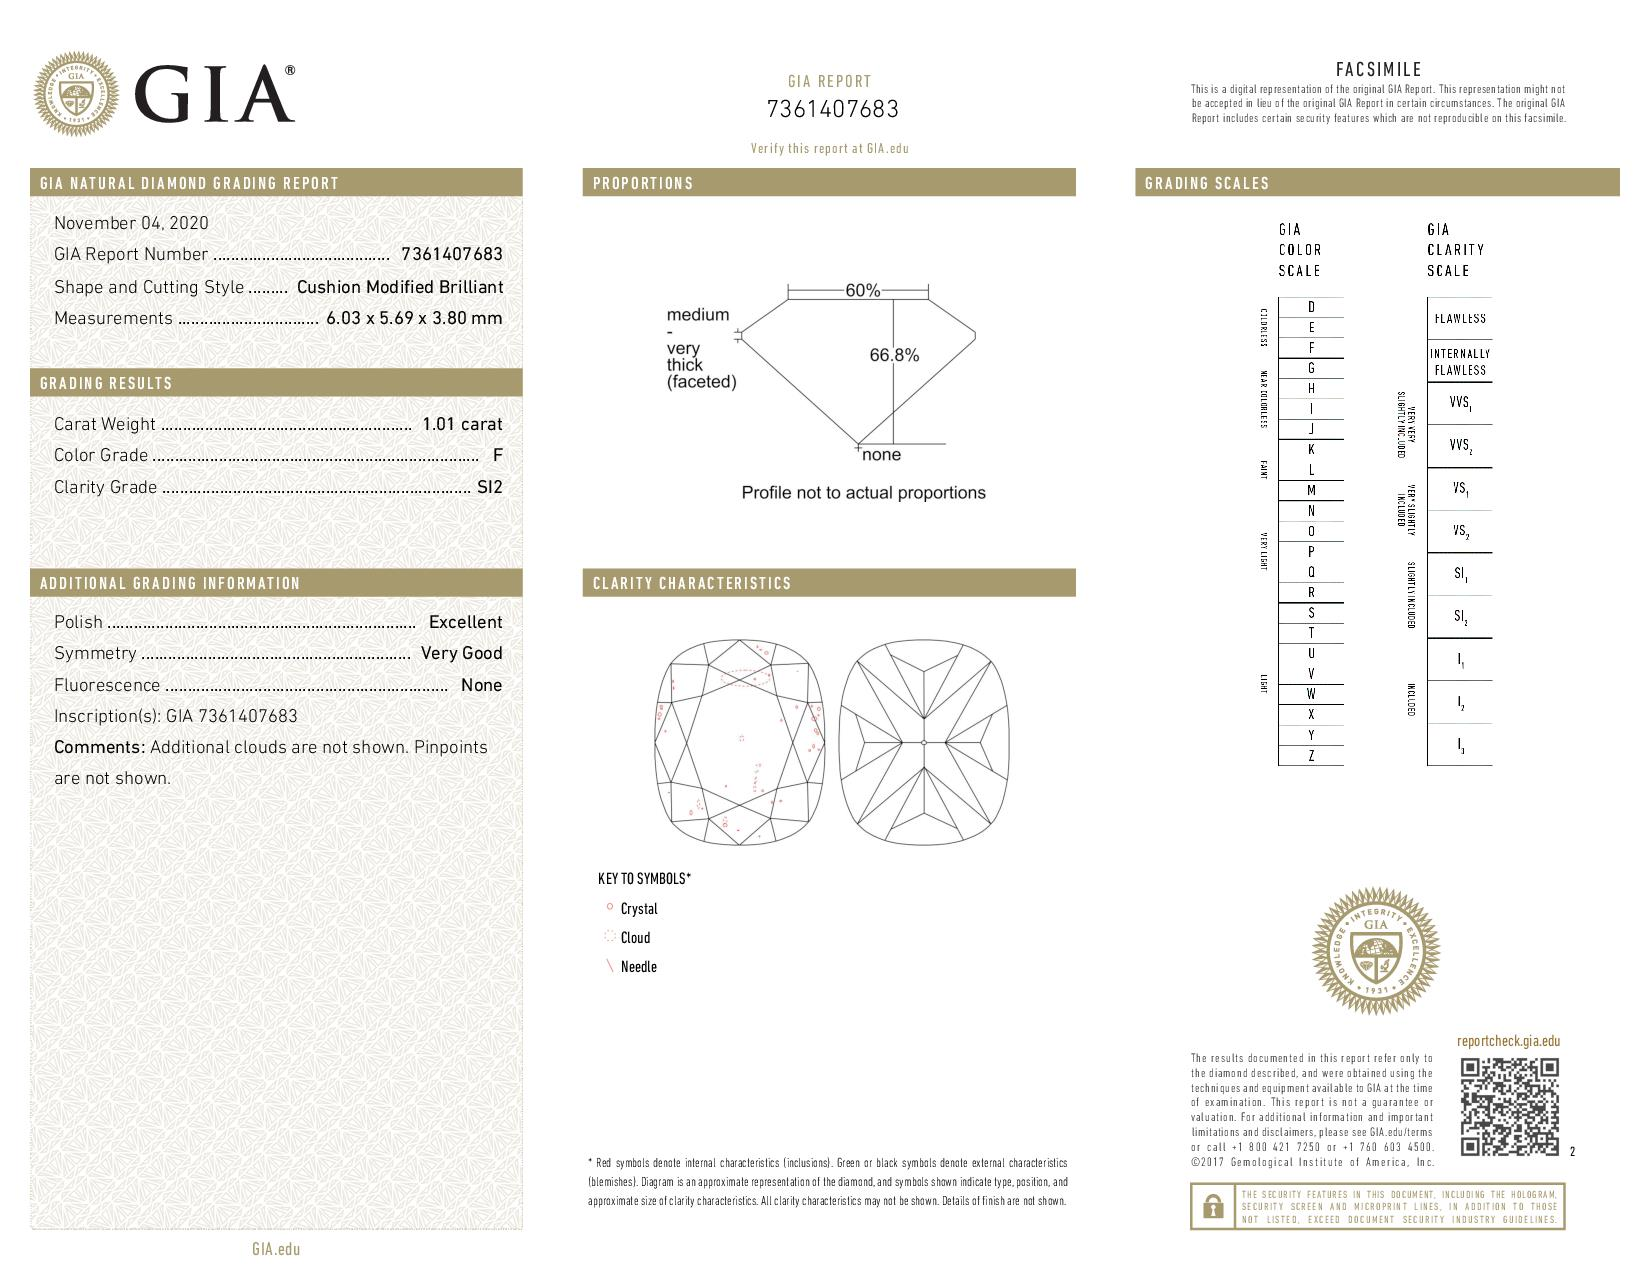 This is a 1.01 carat cushion shape, F color, SI2 clarity natural diamond accompanied by a GIA grading report.